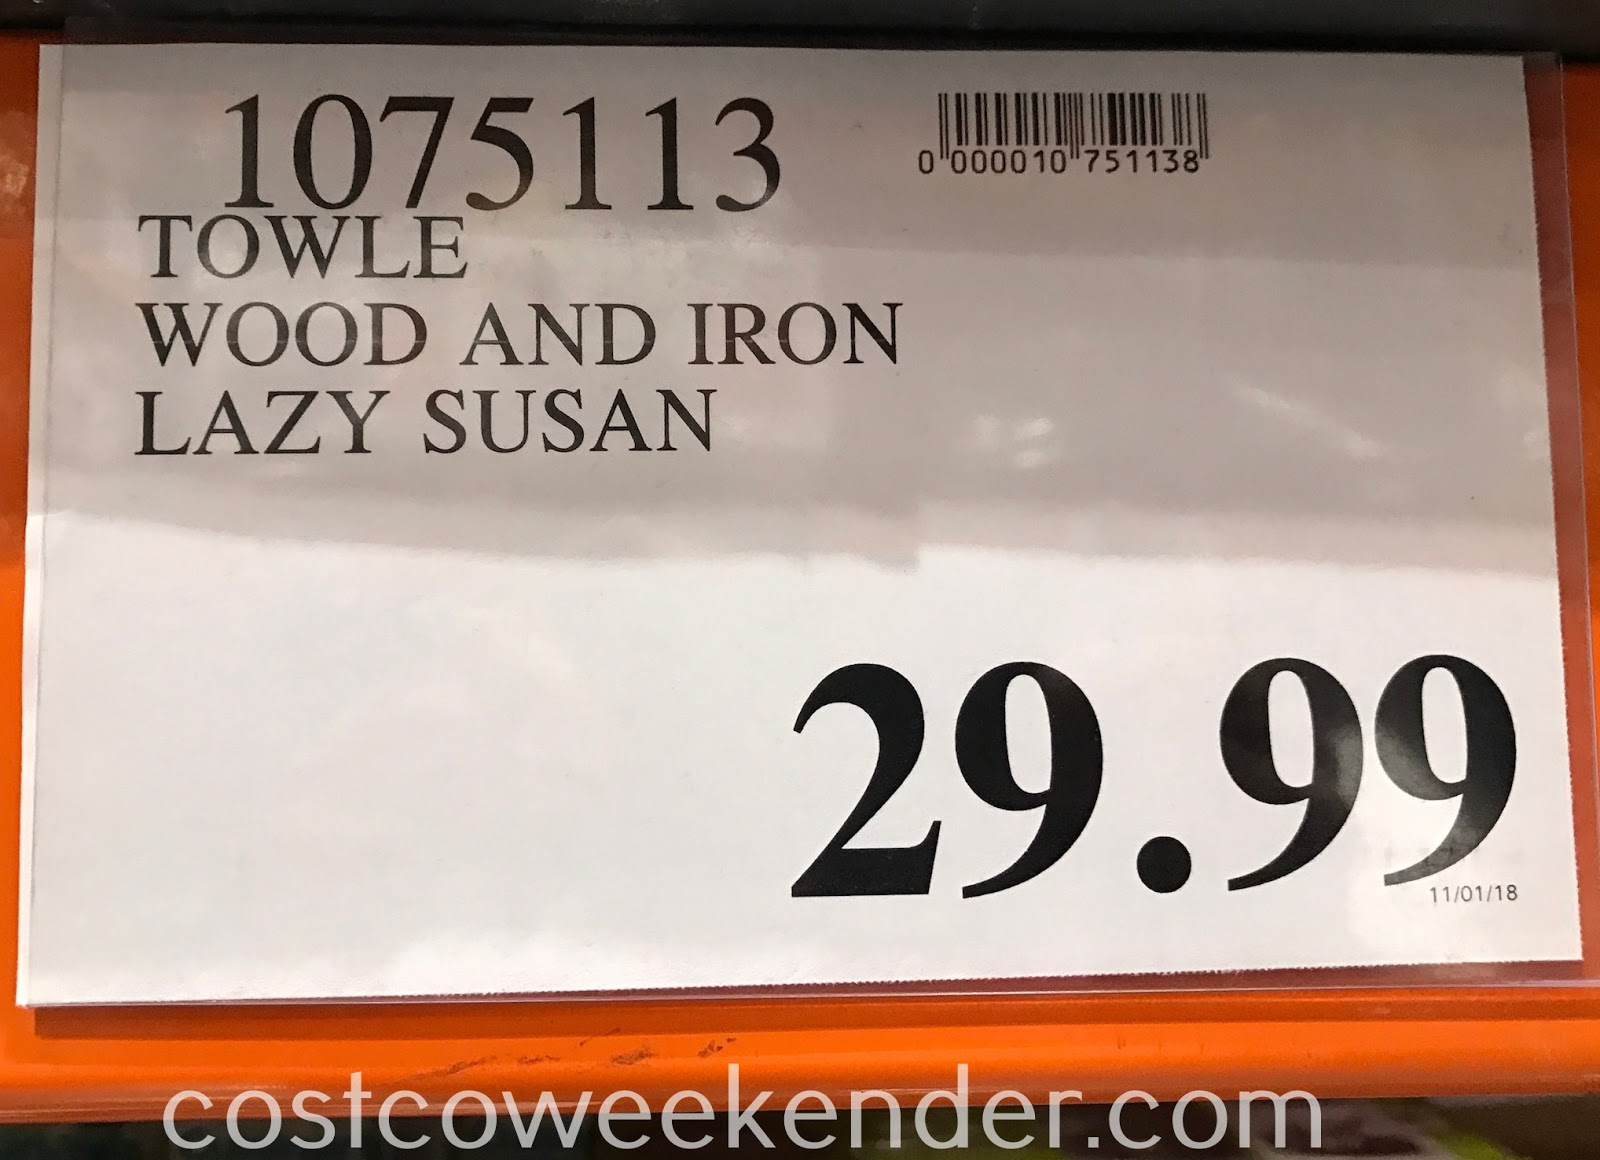 Deal for the Towle Wood and Iron Lazy Susan at Costco